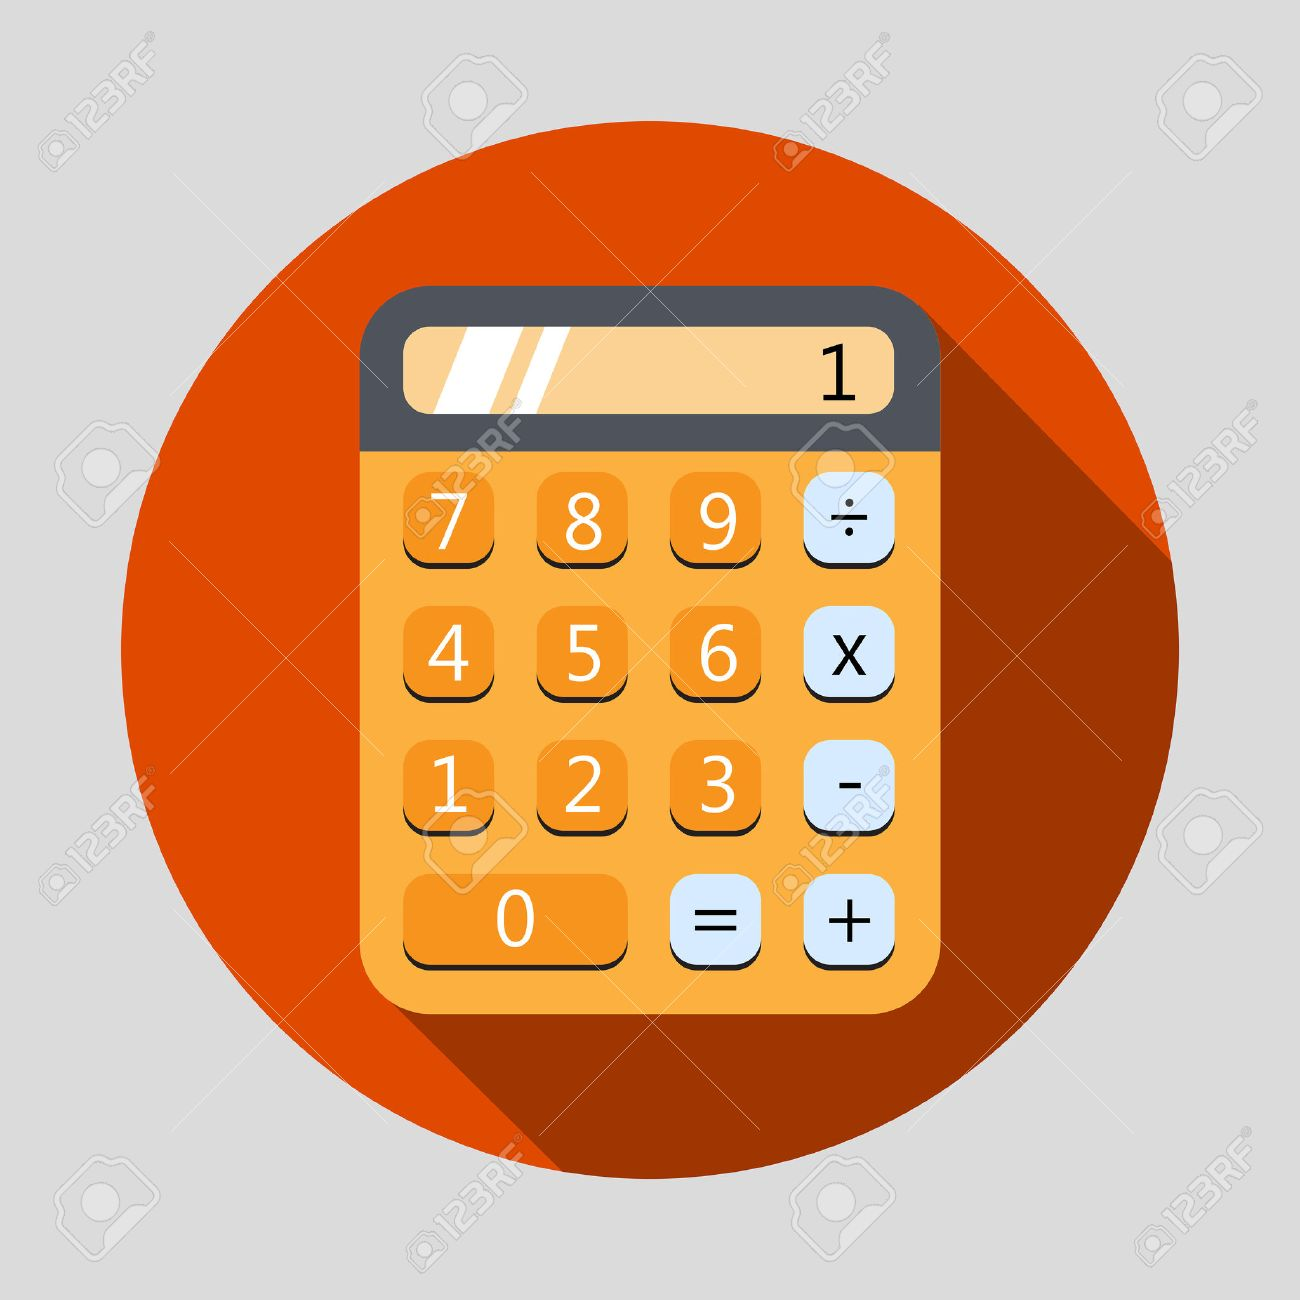 calculator stock illustrations cliparts and royalty calculator calculator flat design icon long shadow vector illustration